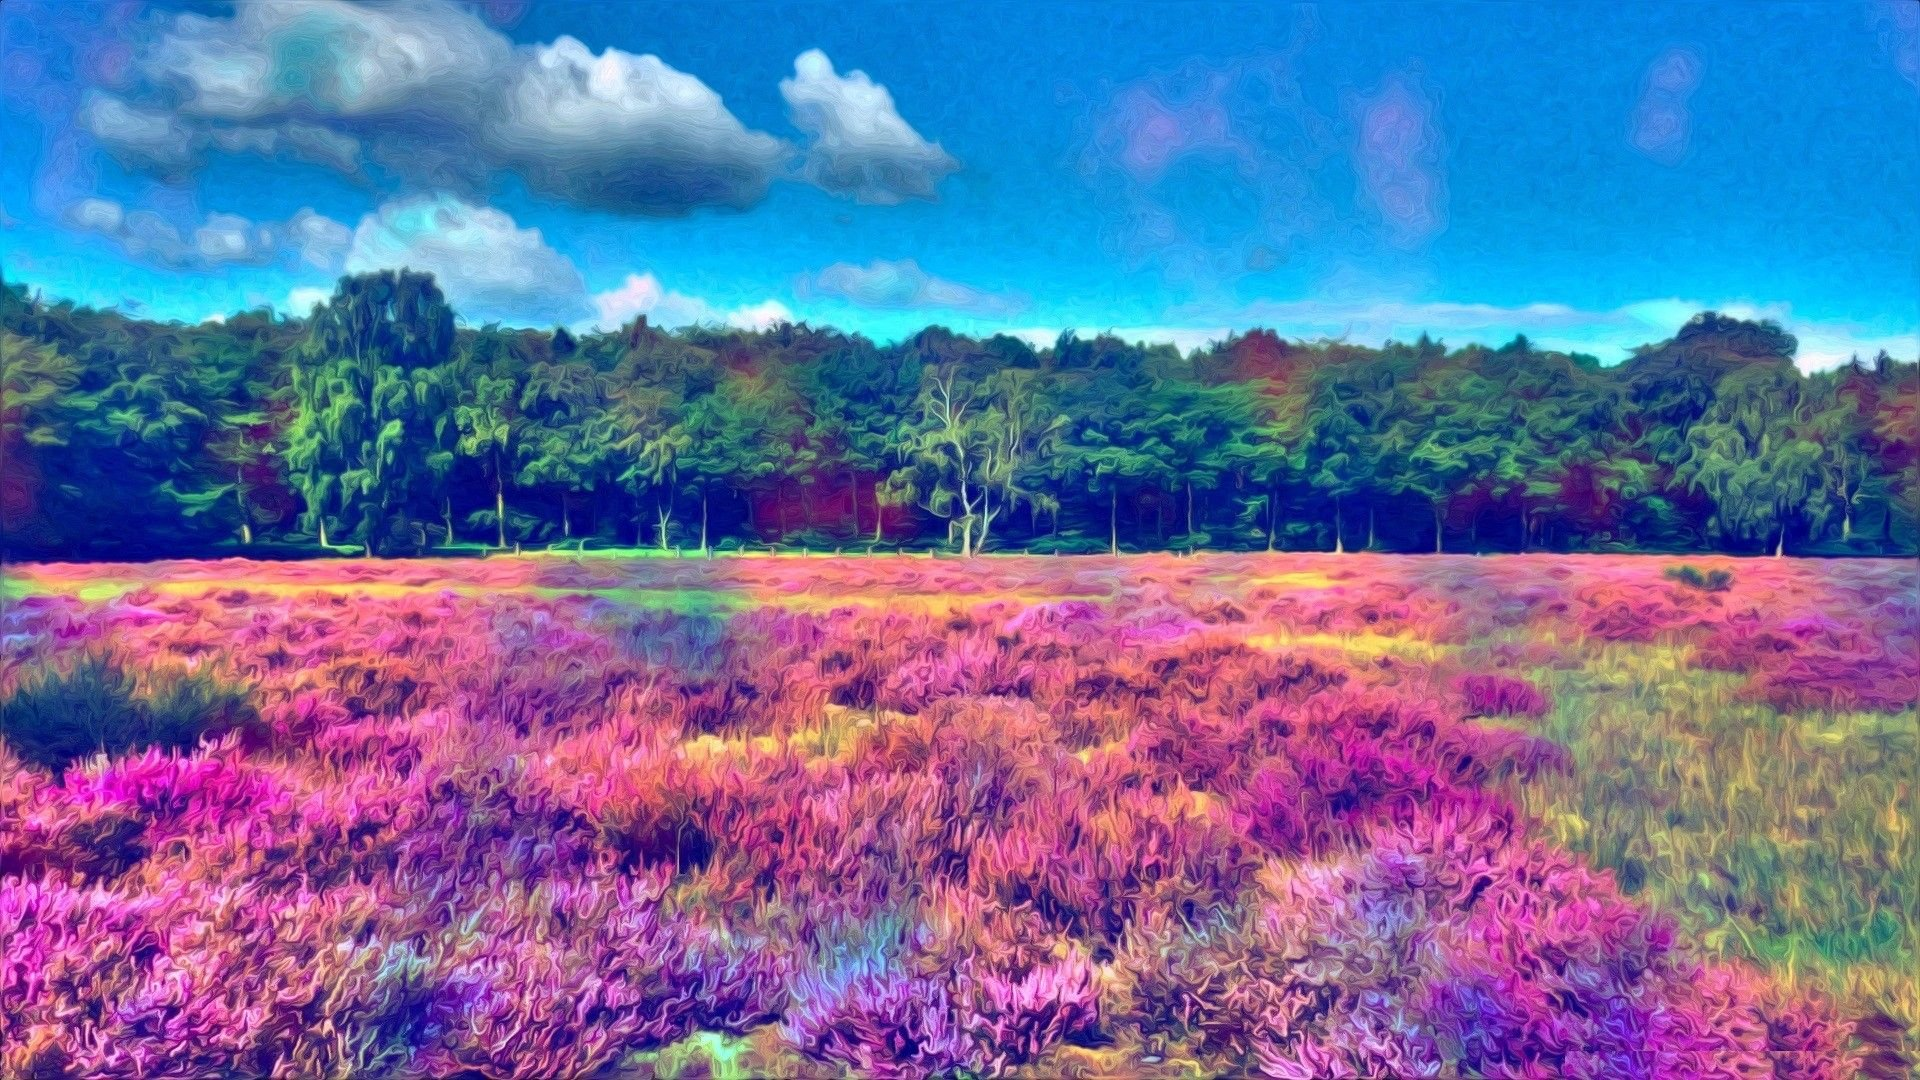 Psychedelic Nature Wallpapers Top Free Psychedelic Nature